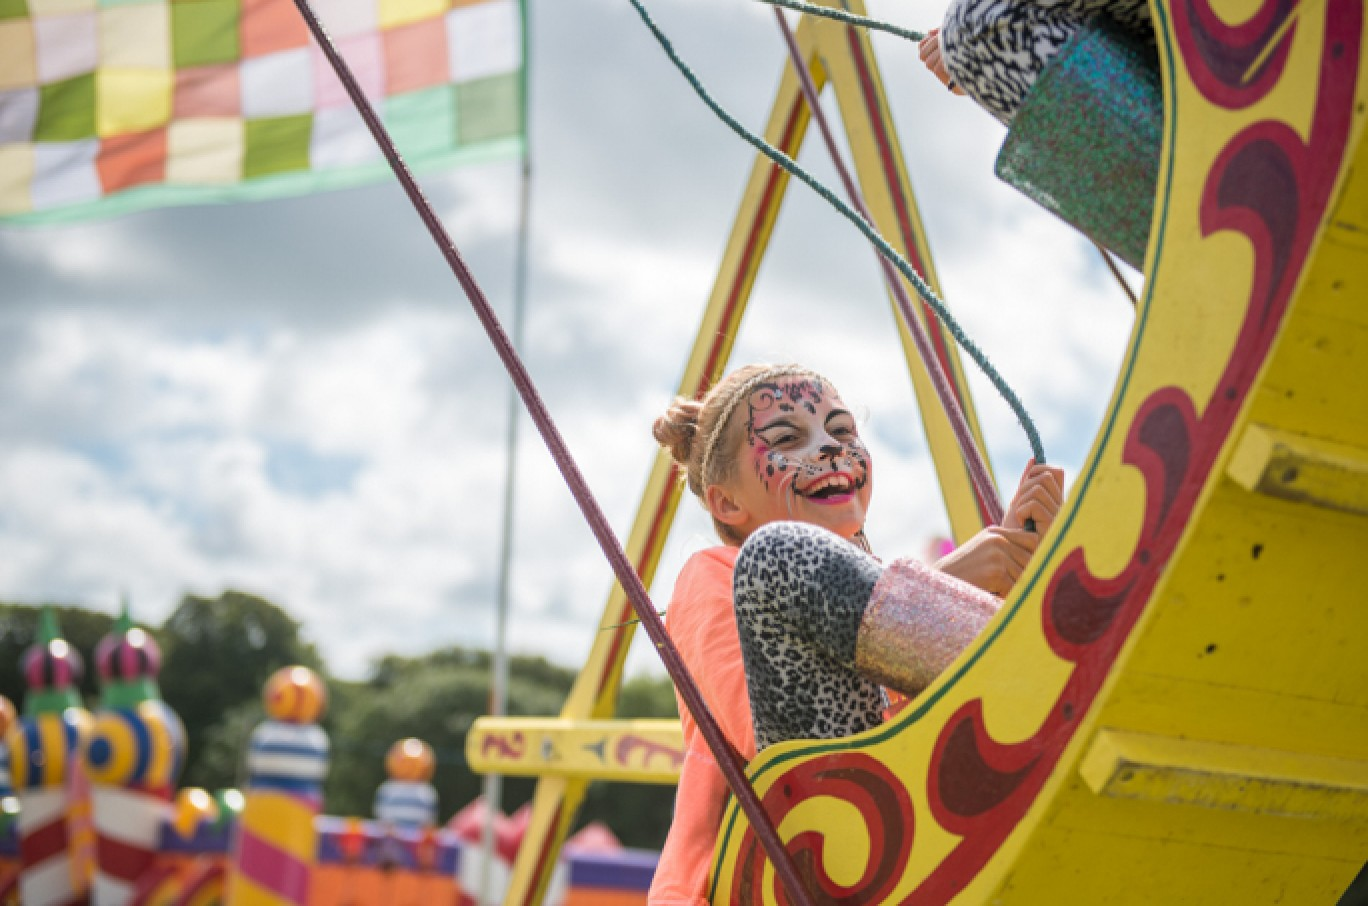 6_131-camp-bestival-2017-kids-field-cl-dsc_23901501585107